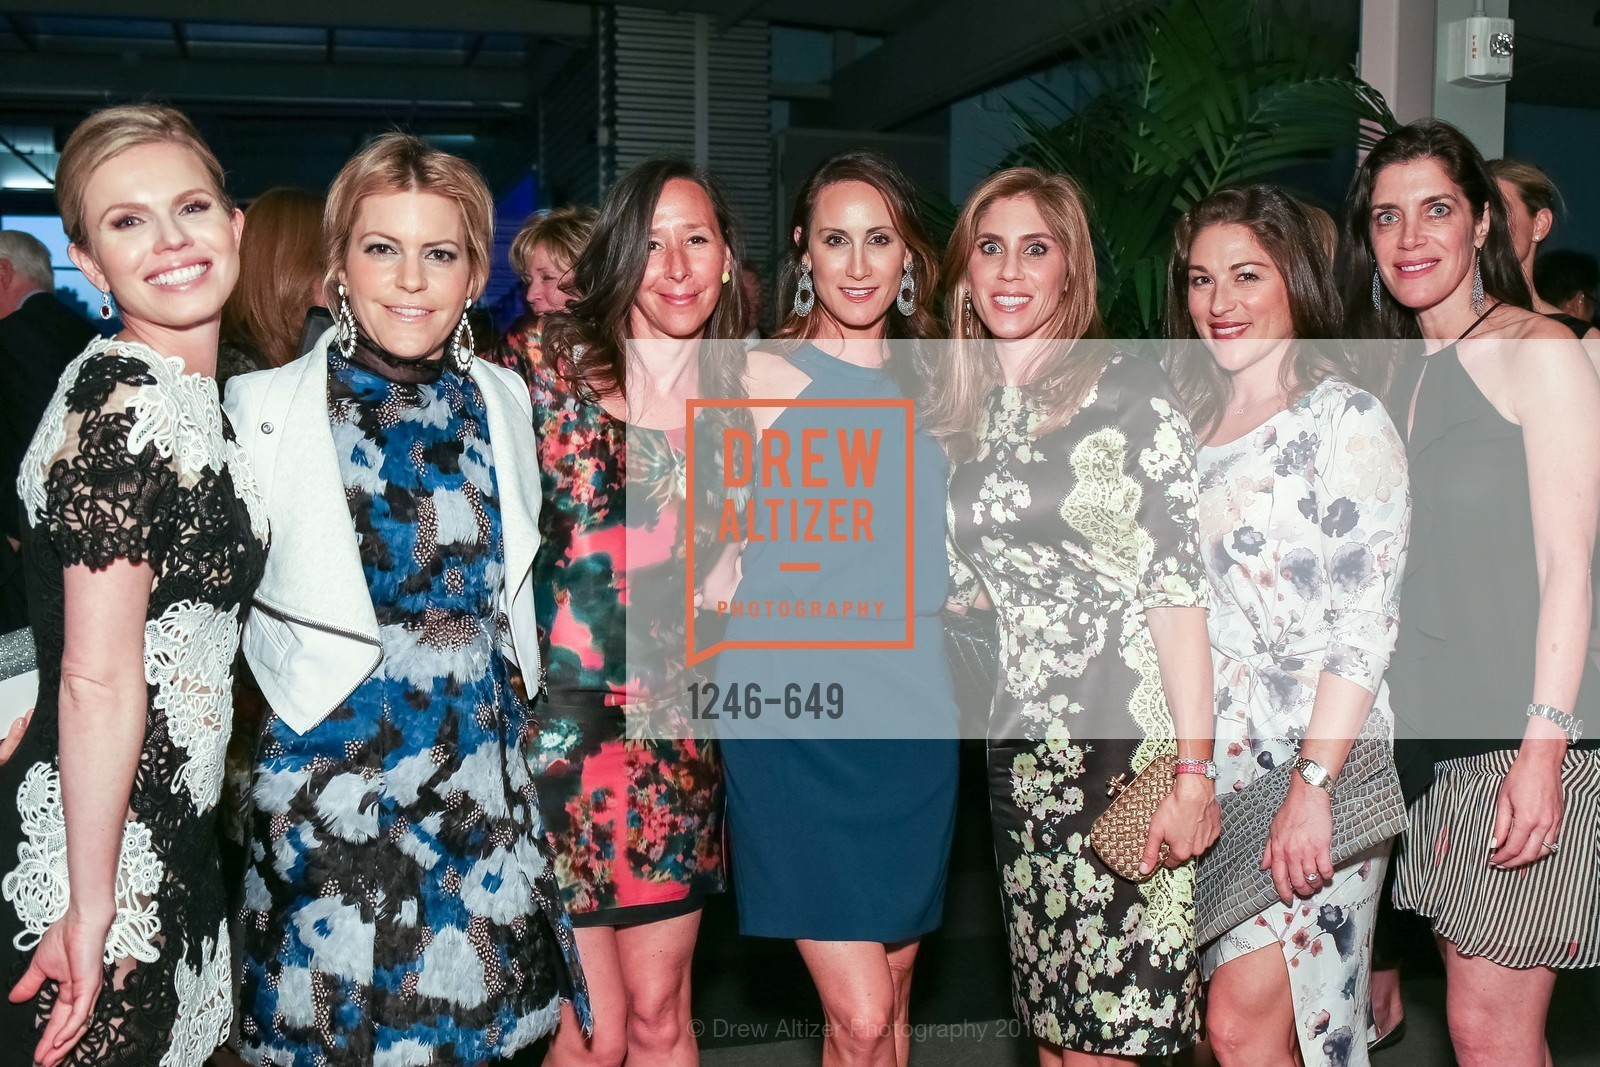 Claire Fluhr, Suzanne Felson, Pam Ginocchio, Vicki Kahn, Maya Segal, Dana Frieman, Fashion Forward: An Evening with Erdem presented by SF Opera Guild and Saks Fifth Avenue, Pier 27. Pier 27, The Embarcadero, March 25th, 2015,Drew Altizer, Drew Altizer Photography, full-service agency, private events, San Francisco photographer, photographer california